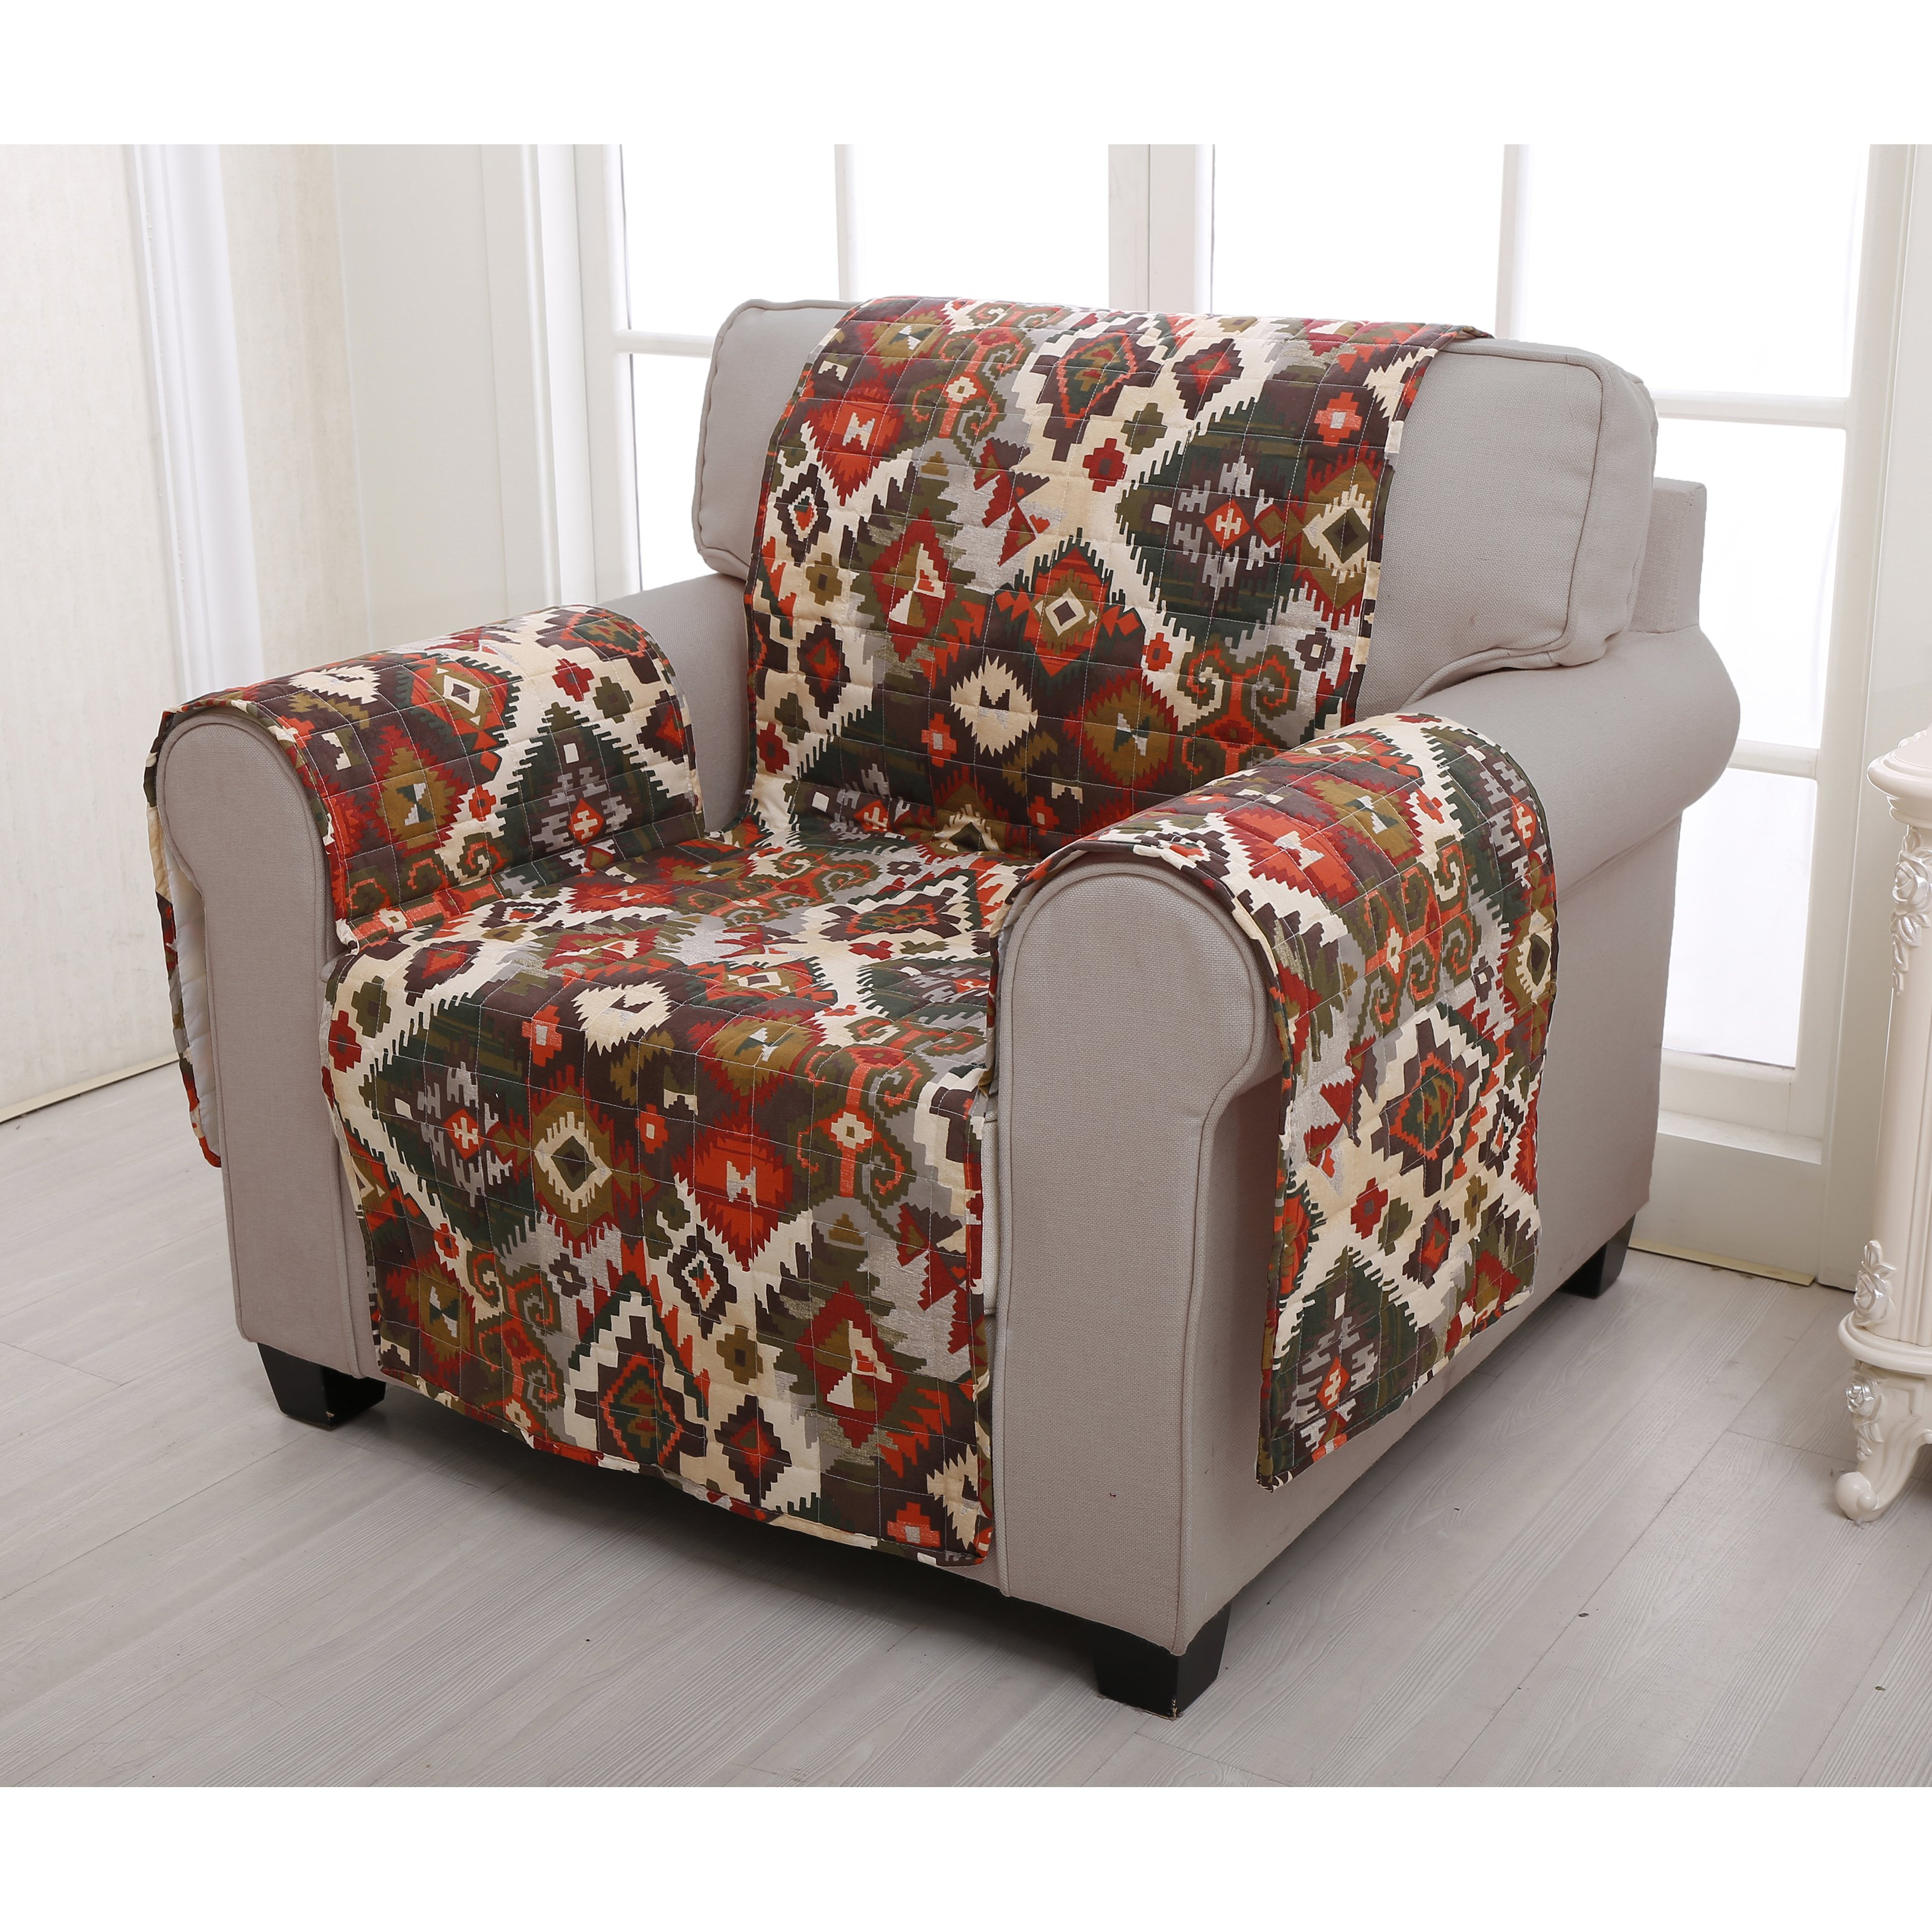 Greenland Home Fashions Folk Festival Arm Chair Furniture Protector